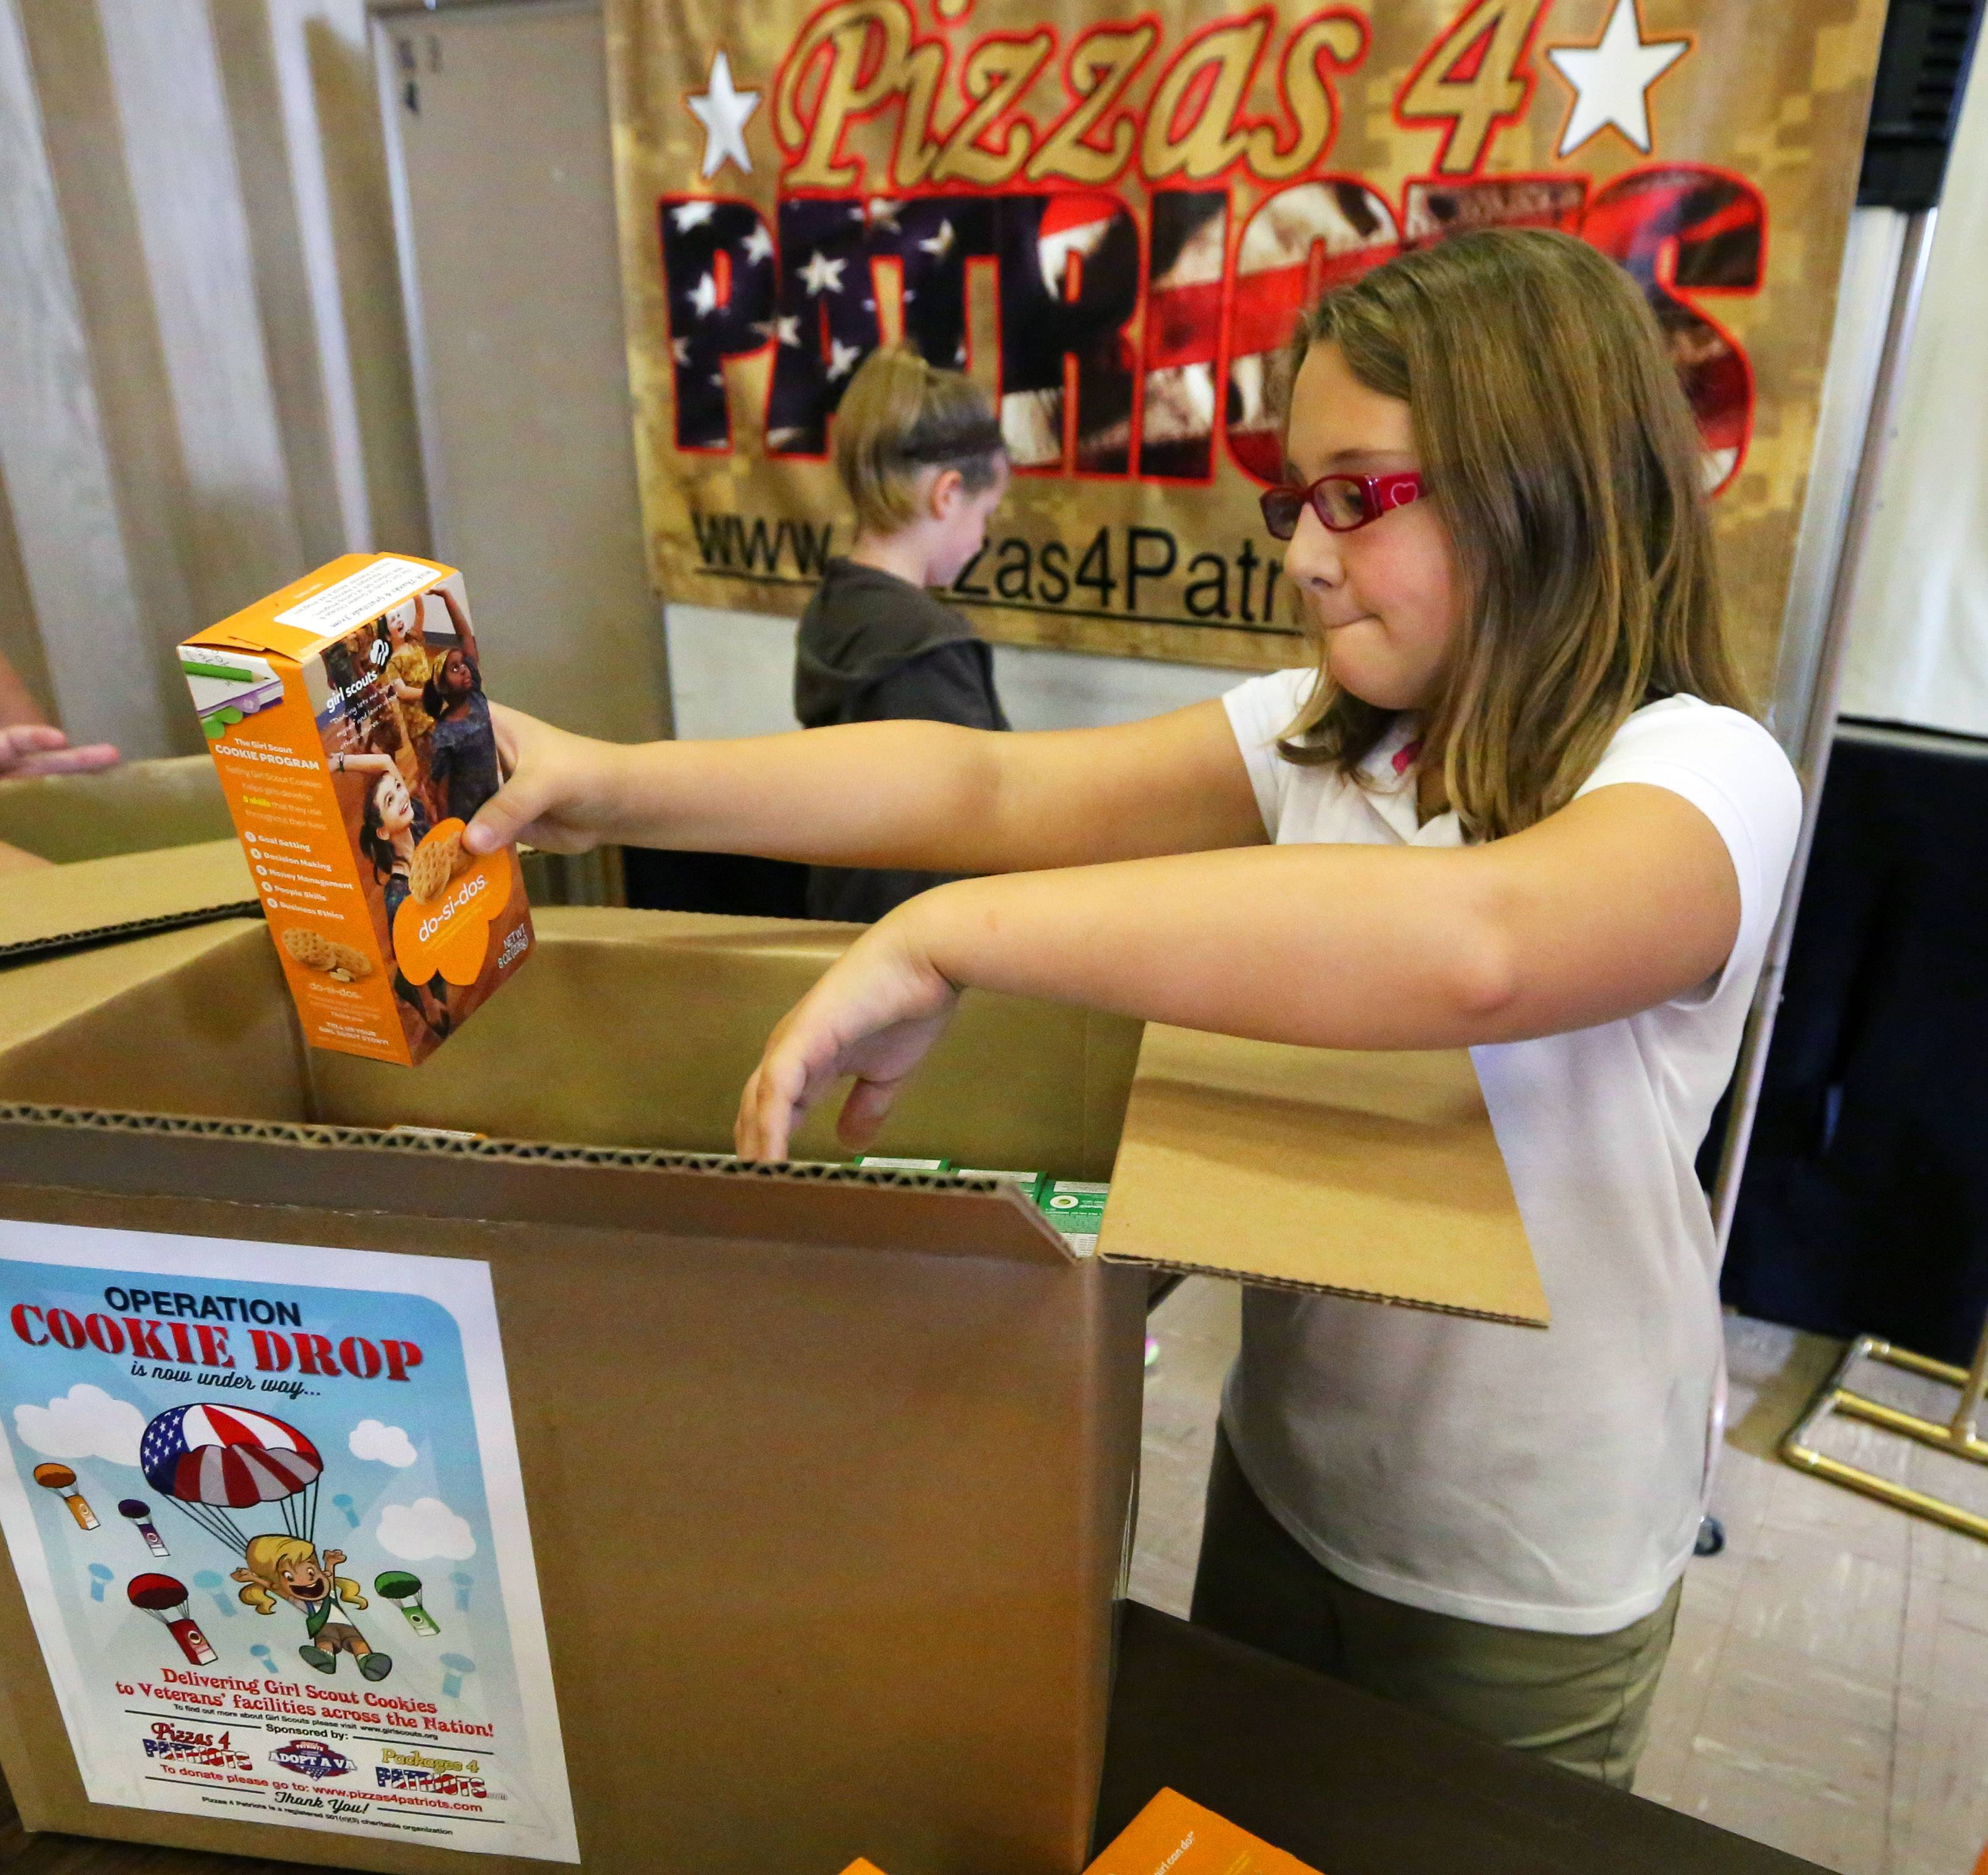 Elk Grove's Pizza 4 Patriots? How about Operation Cookie Drop